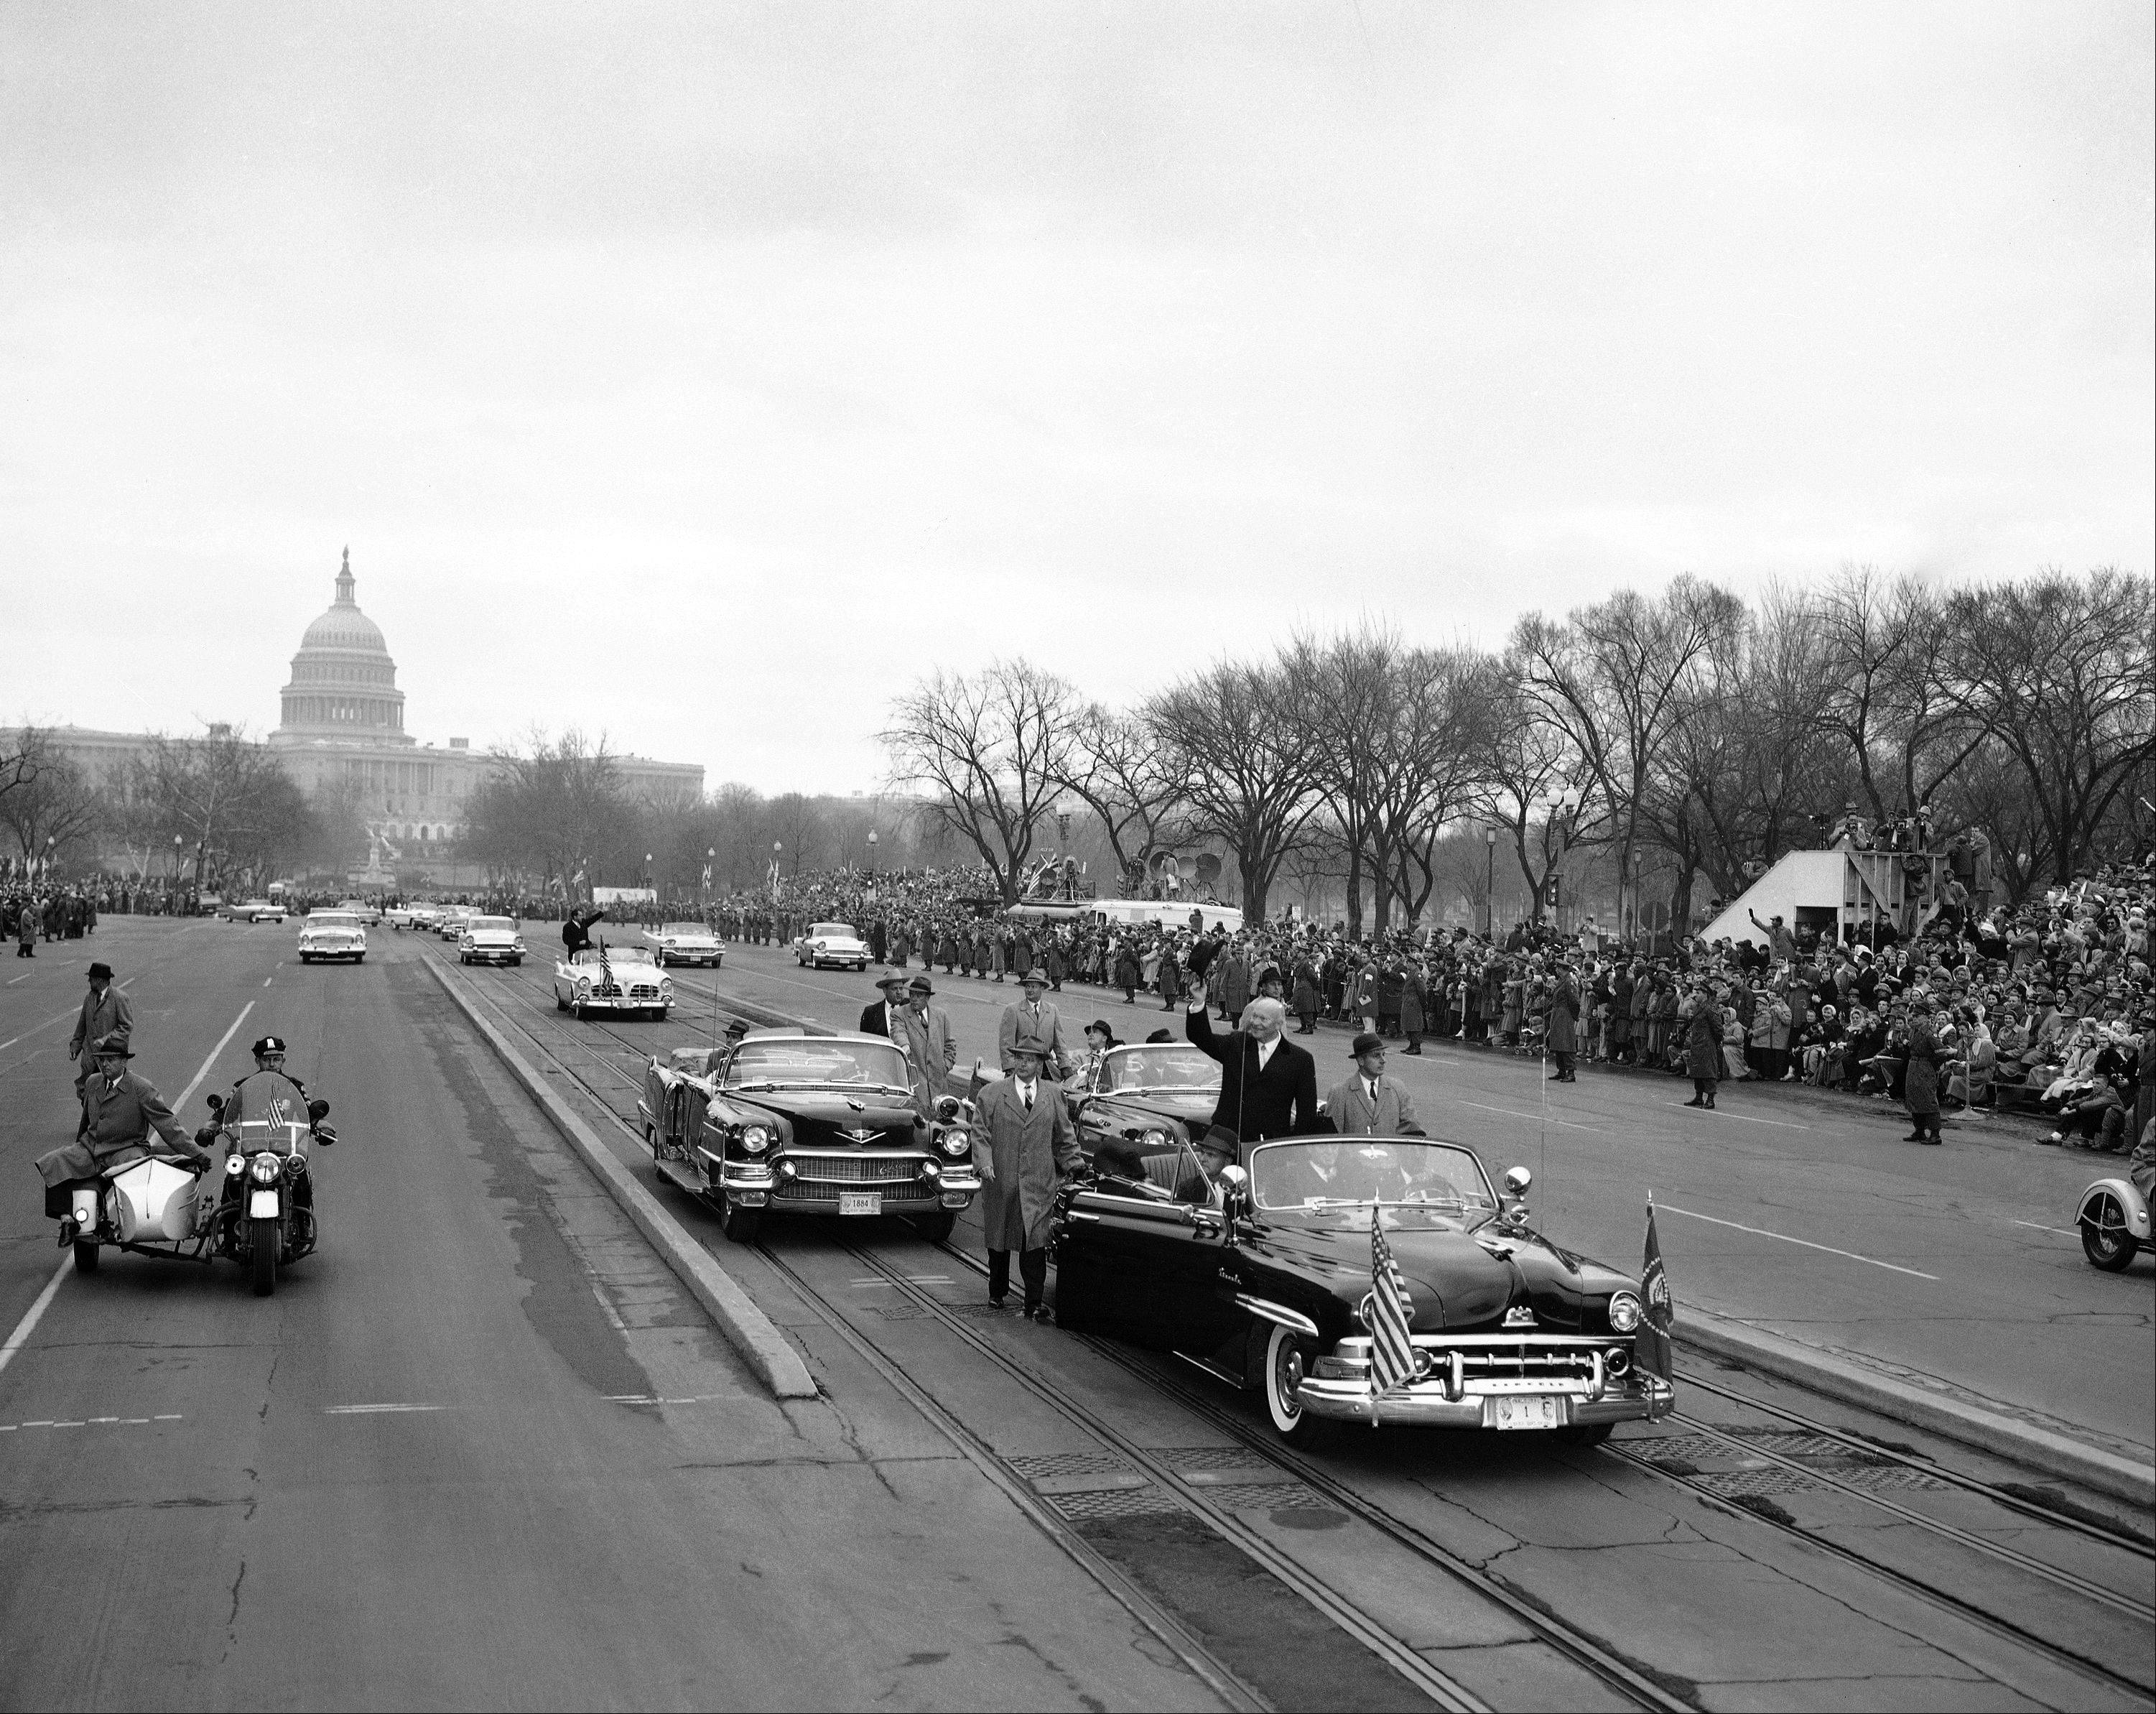 President Dwight Eisenhower stands in his open car and waves as he leaves the Capitol just before swinging into Constitution Avenue on traditional inaugural parade route in Washington on Jan. 21, 1957.